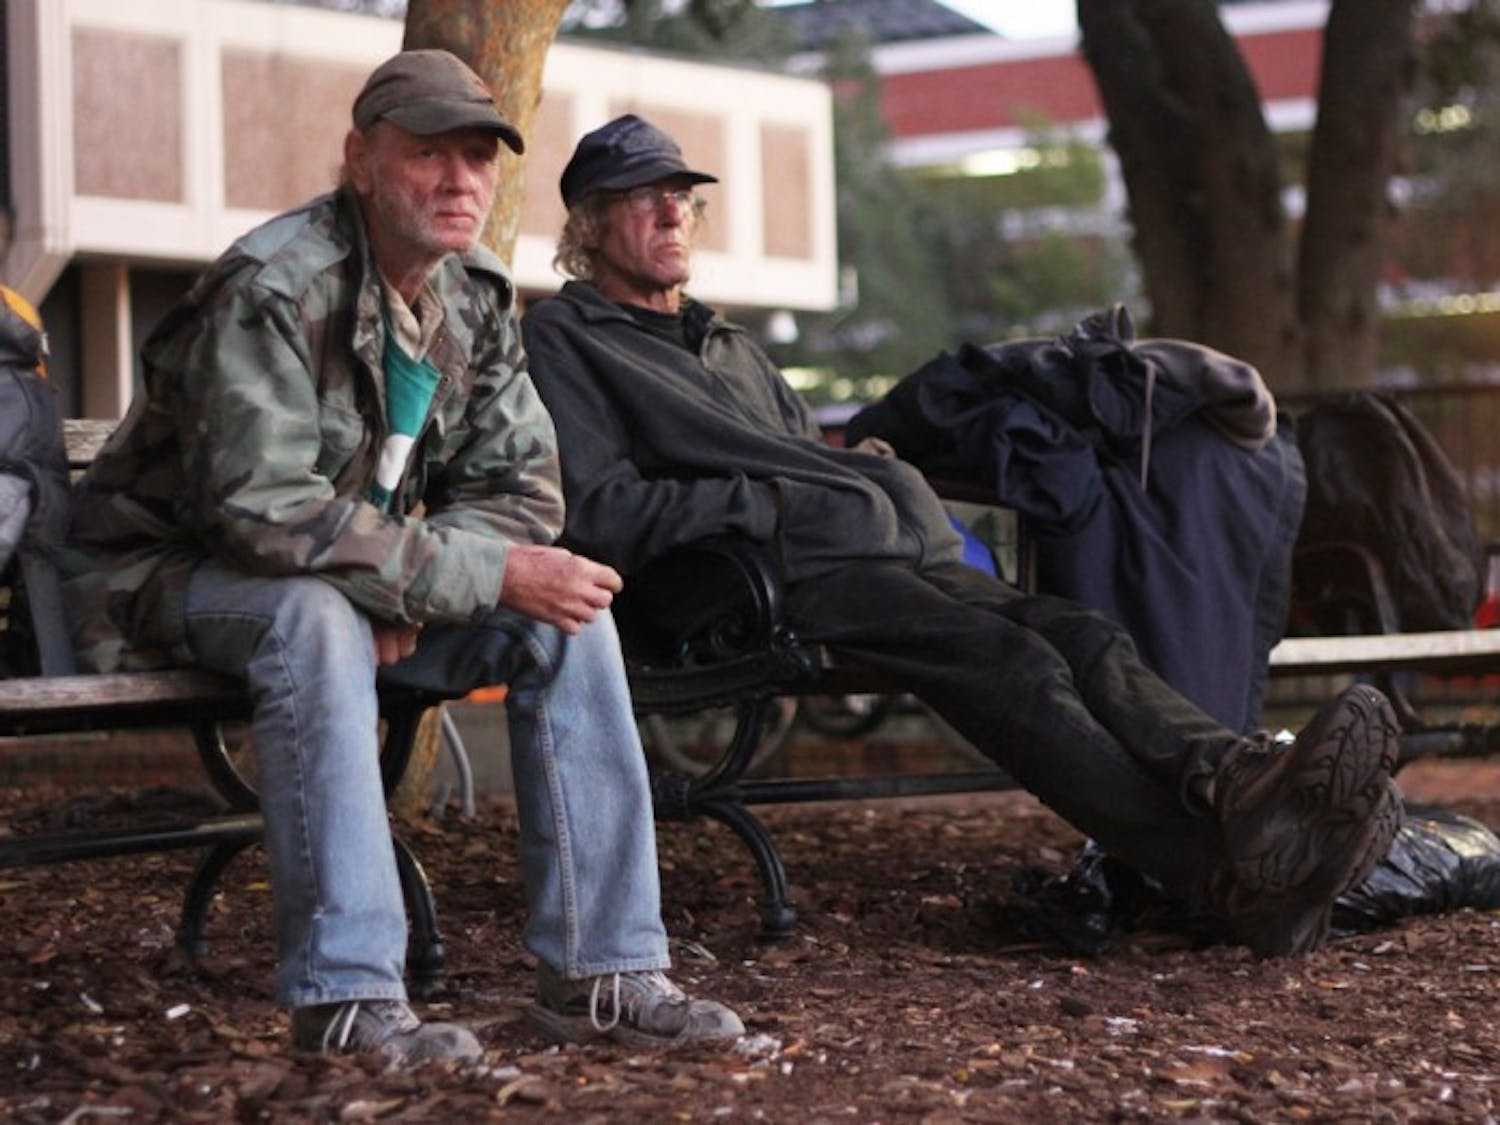 John Roberts, 56, left, and Daniel Walters, 53, sit on a bench on Bo Diddley Community Plaza on Friday night. Temperatures will dip into the low 40s over the next few nights.